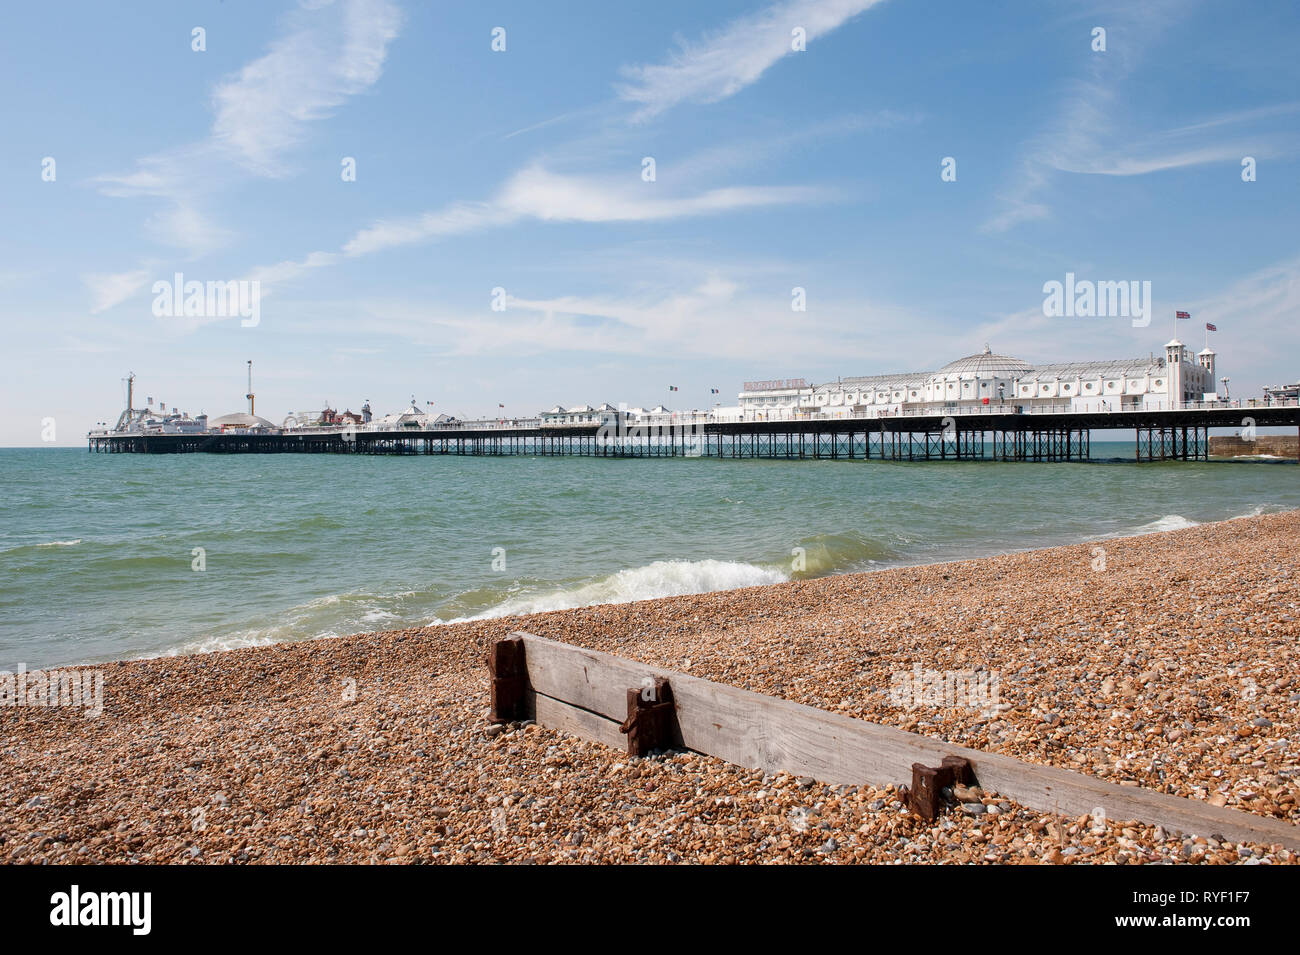 Brighton Palace Pier in the coastal town of Brighton, Sussex, England. Stock Photo